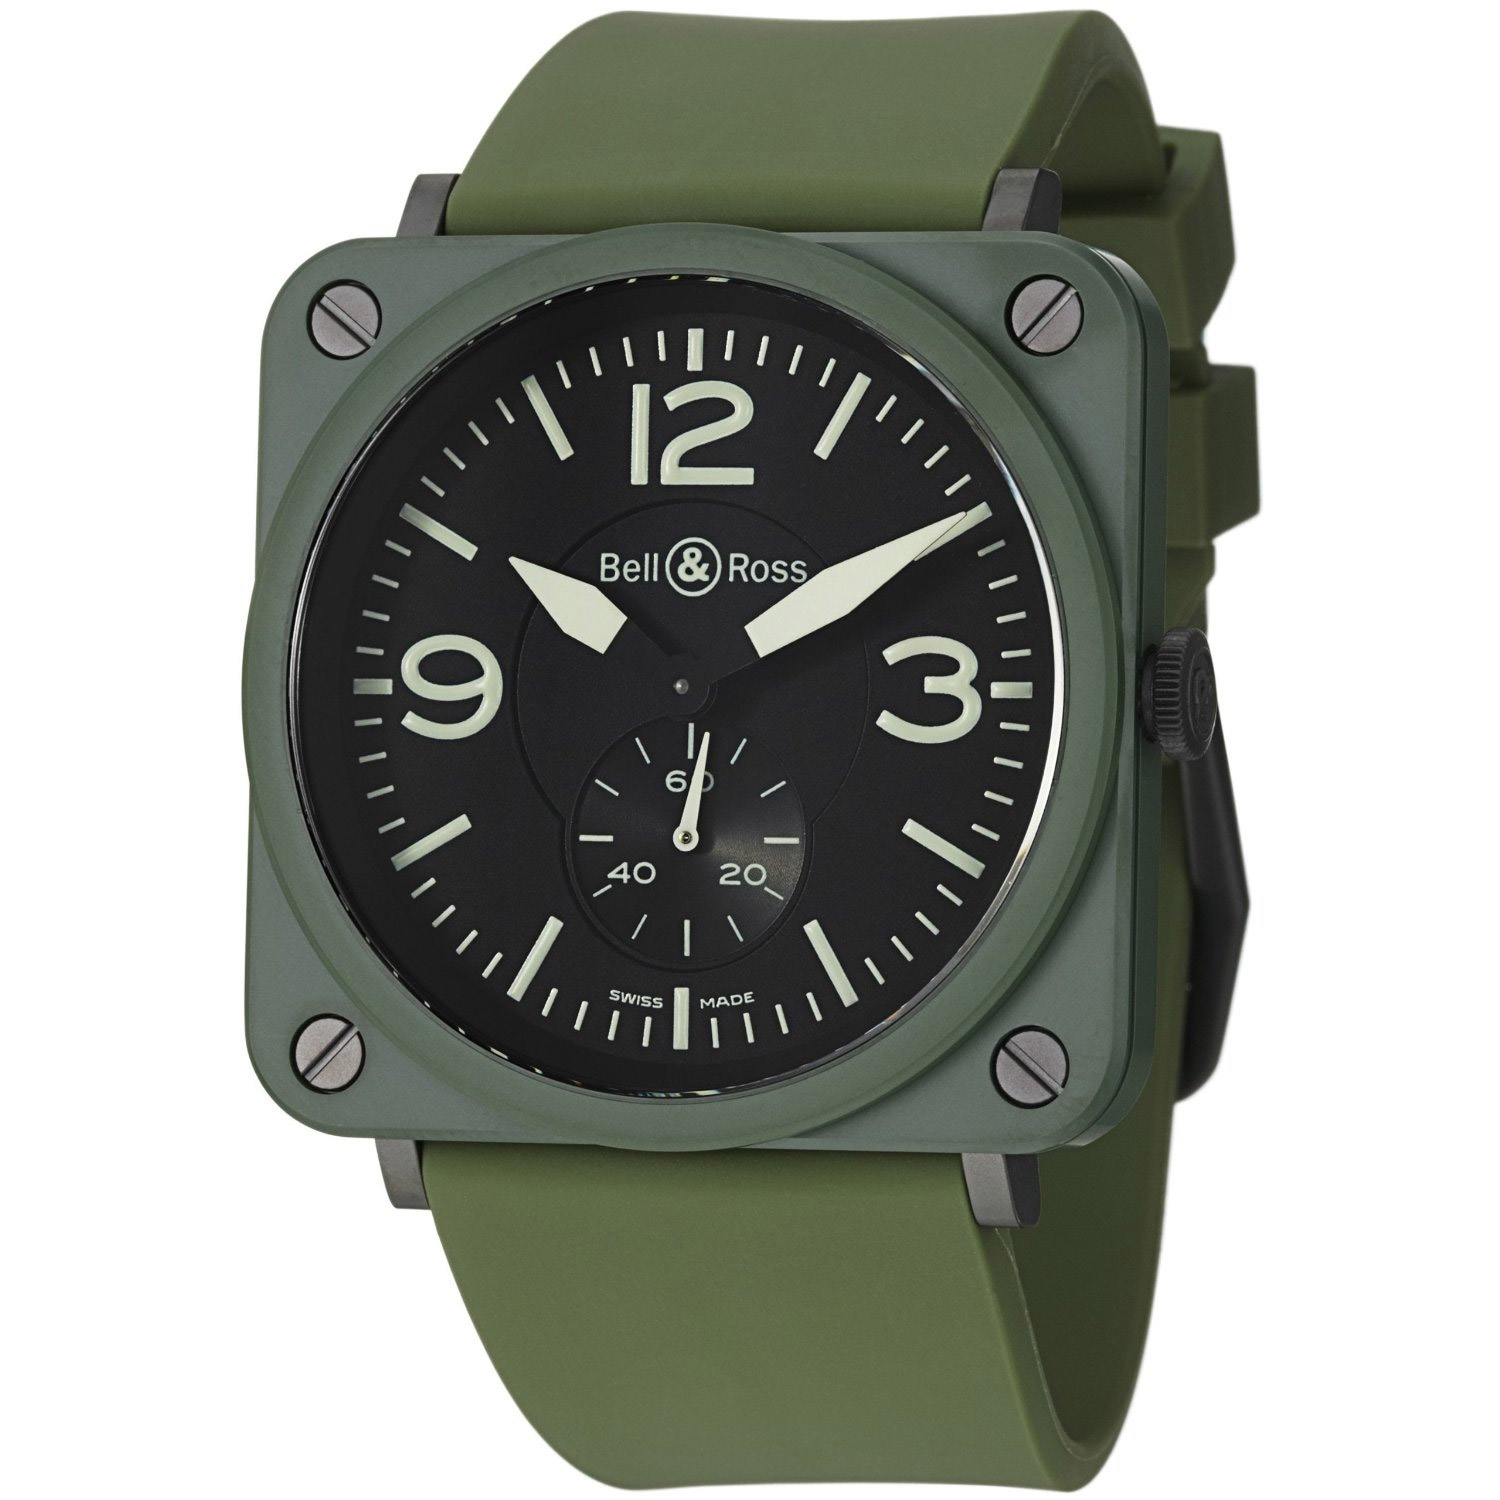 bell ross aviation brs brs military ceramic unisex watch model brs mltrycrmcrb. Black Bedroom Furniture Sets. Home Design Ideas